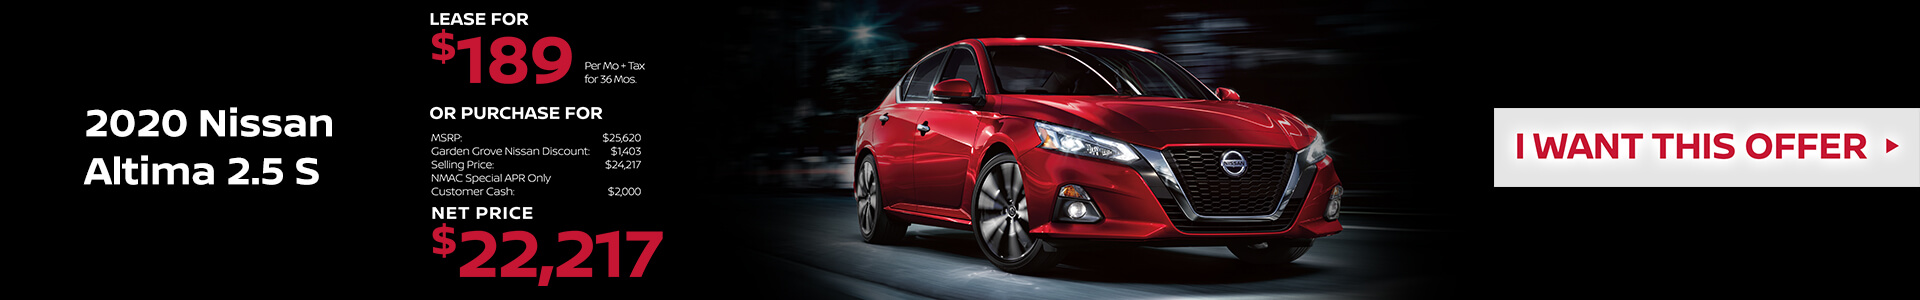 2020 Nissan Altima Lease for $189